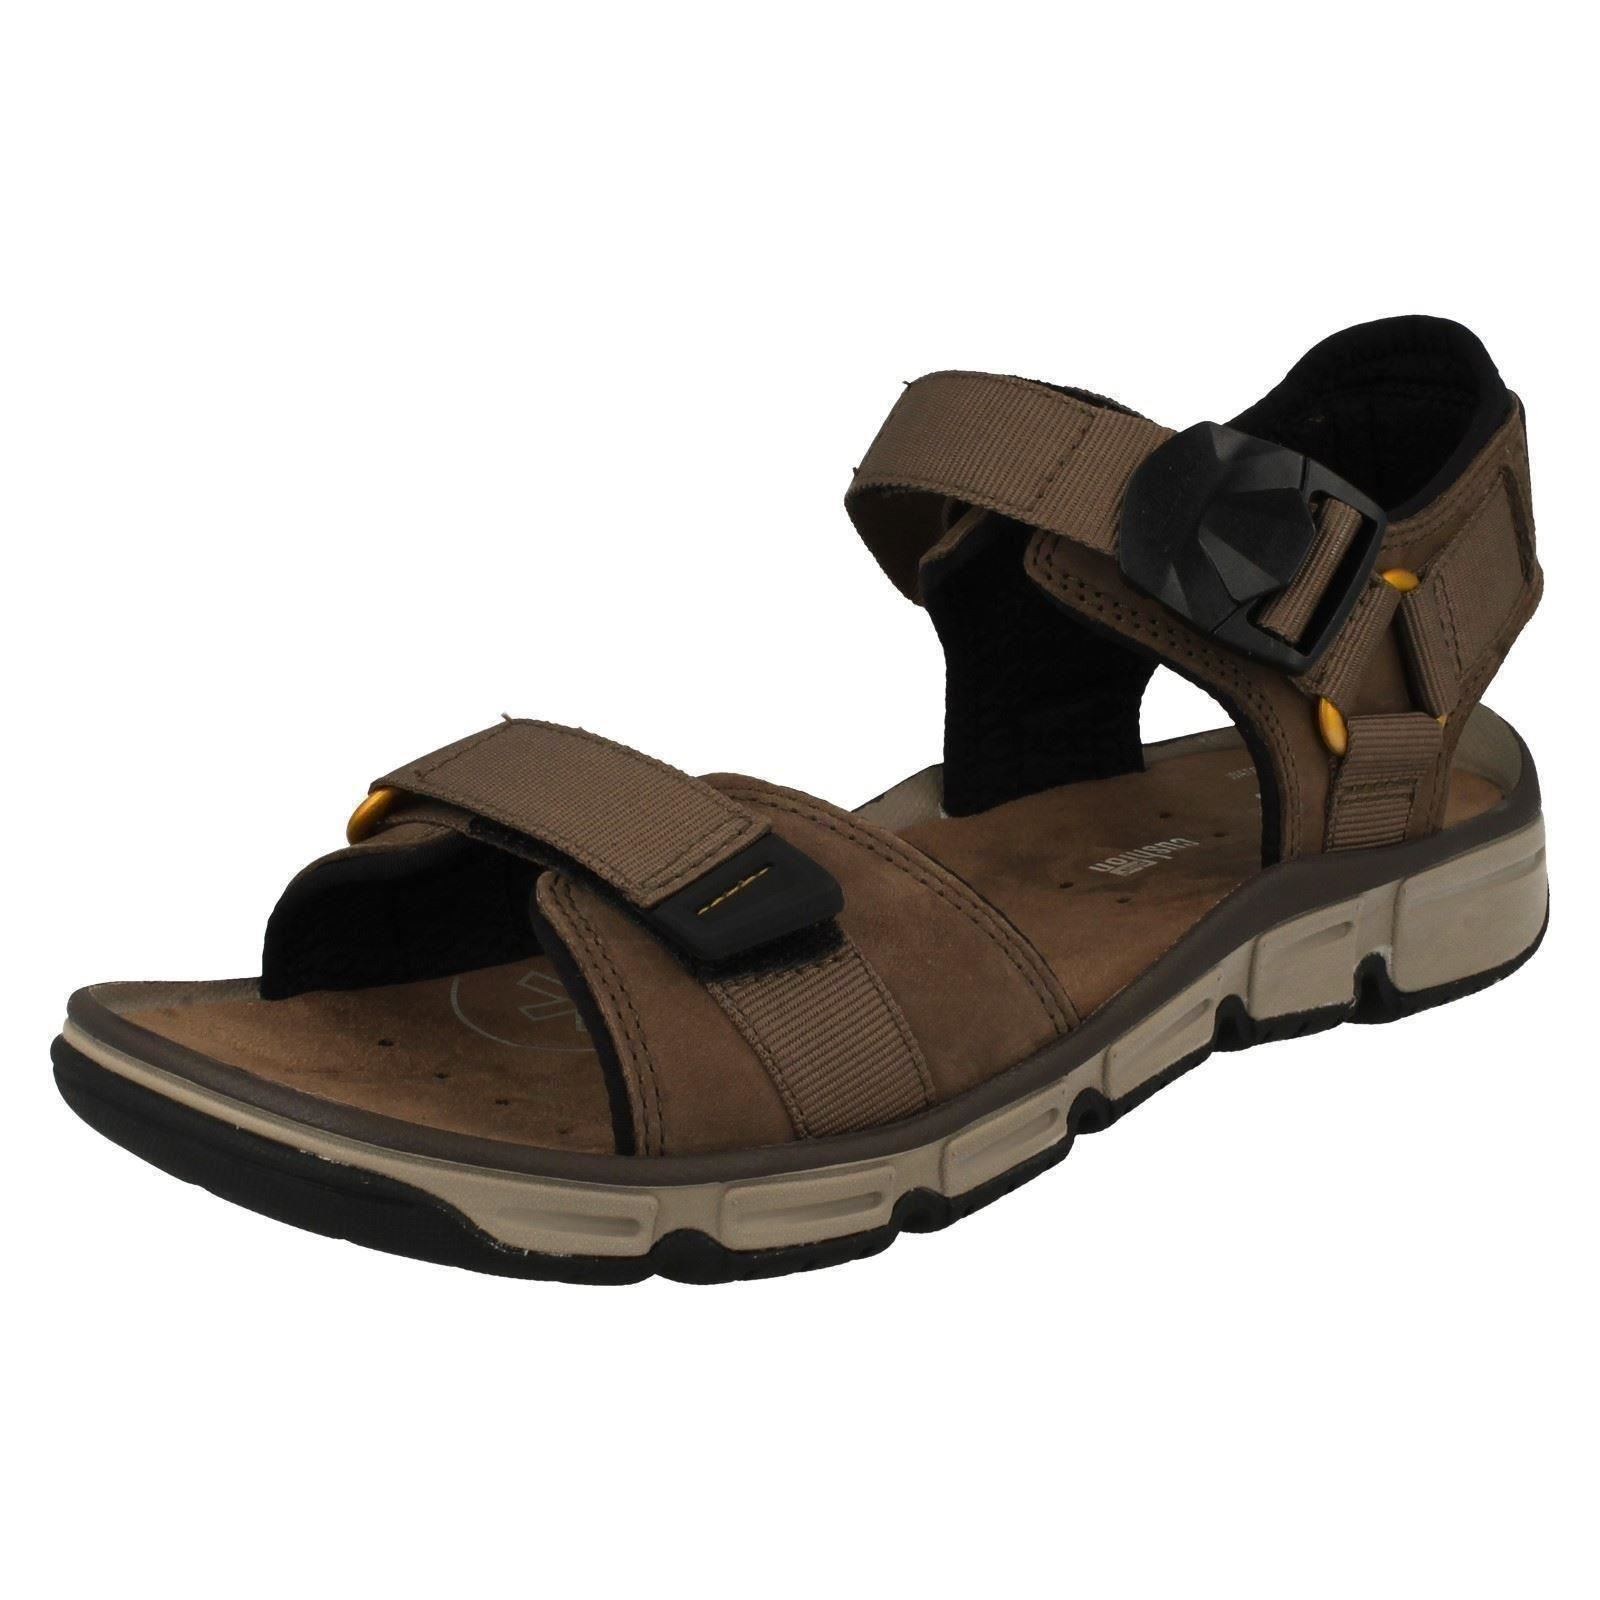 be7b9122984 Mens Clarks Explore Part Nubuck Leather Casual Sandals G Fitting UK 13  Mushroom. About this product. Picture 1 of 7  Picture 2 of 7 ...